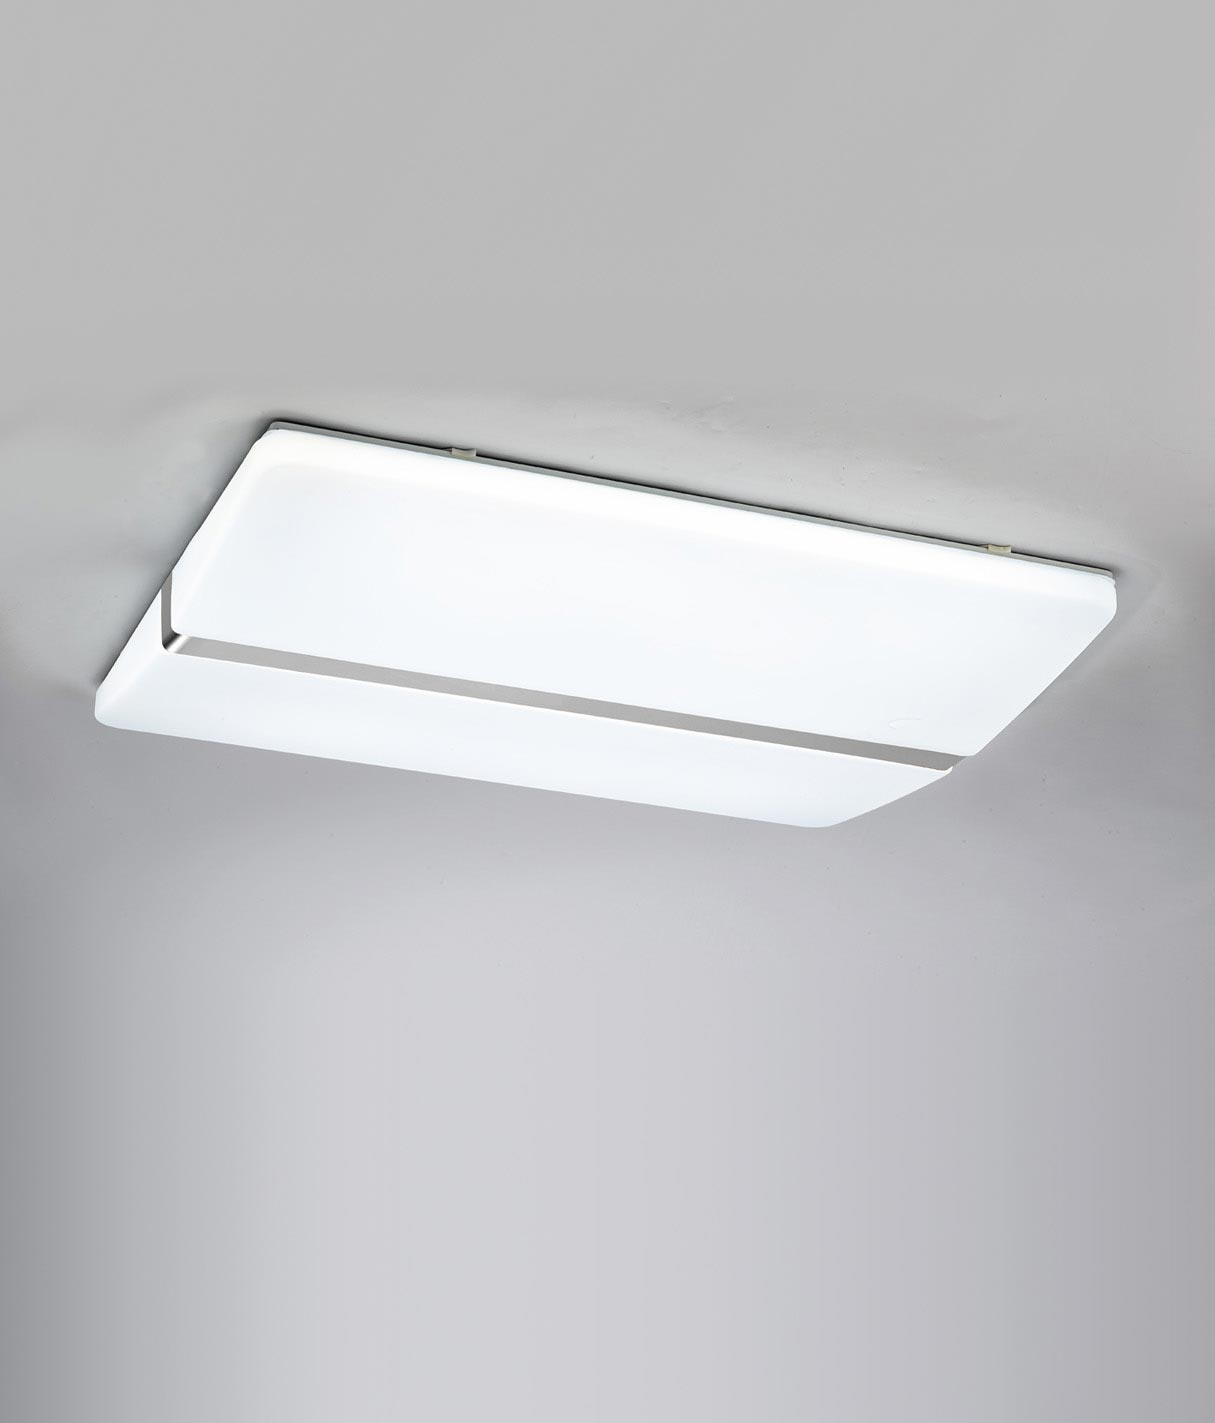 Plaf n led cocina line regulable la casa de la l mpara for Plafon led cocina rectangular